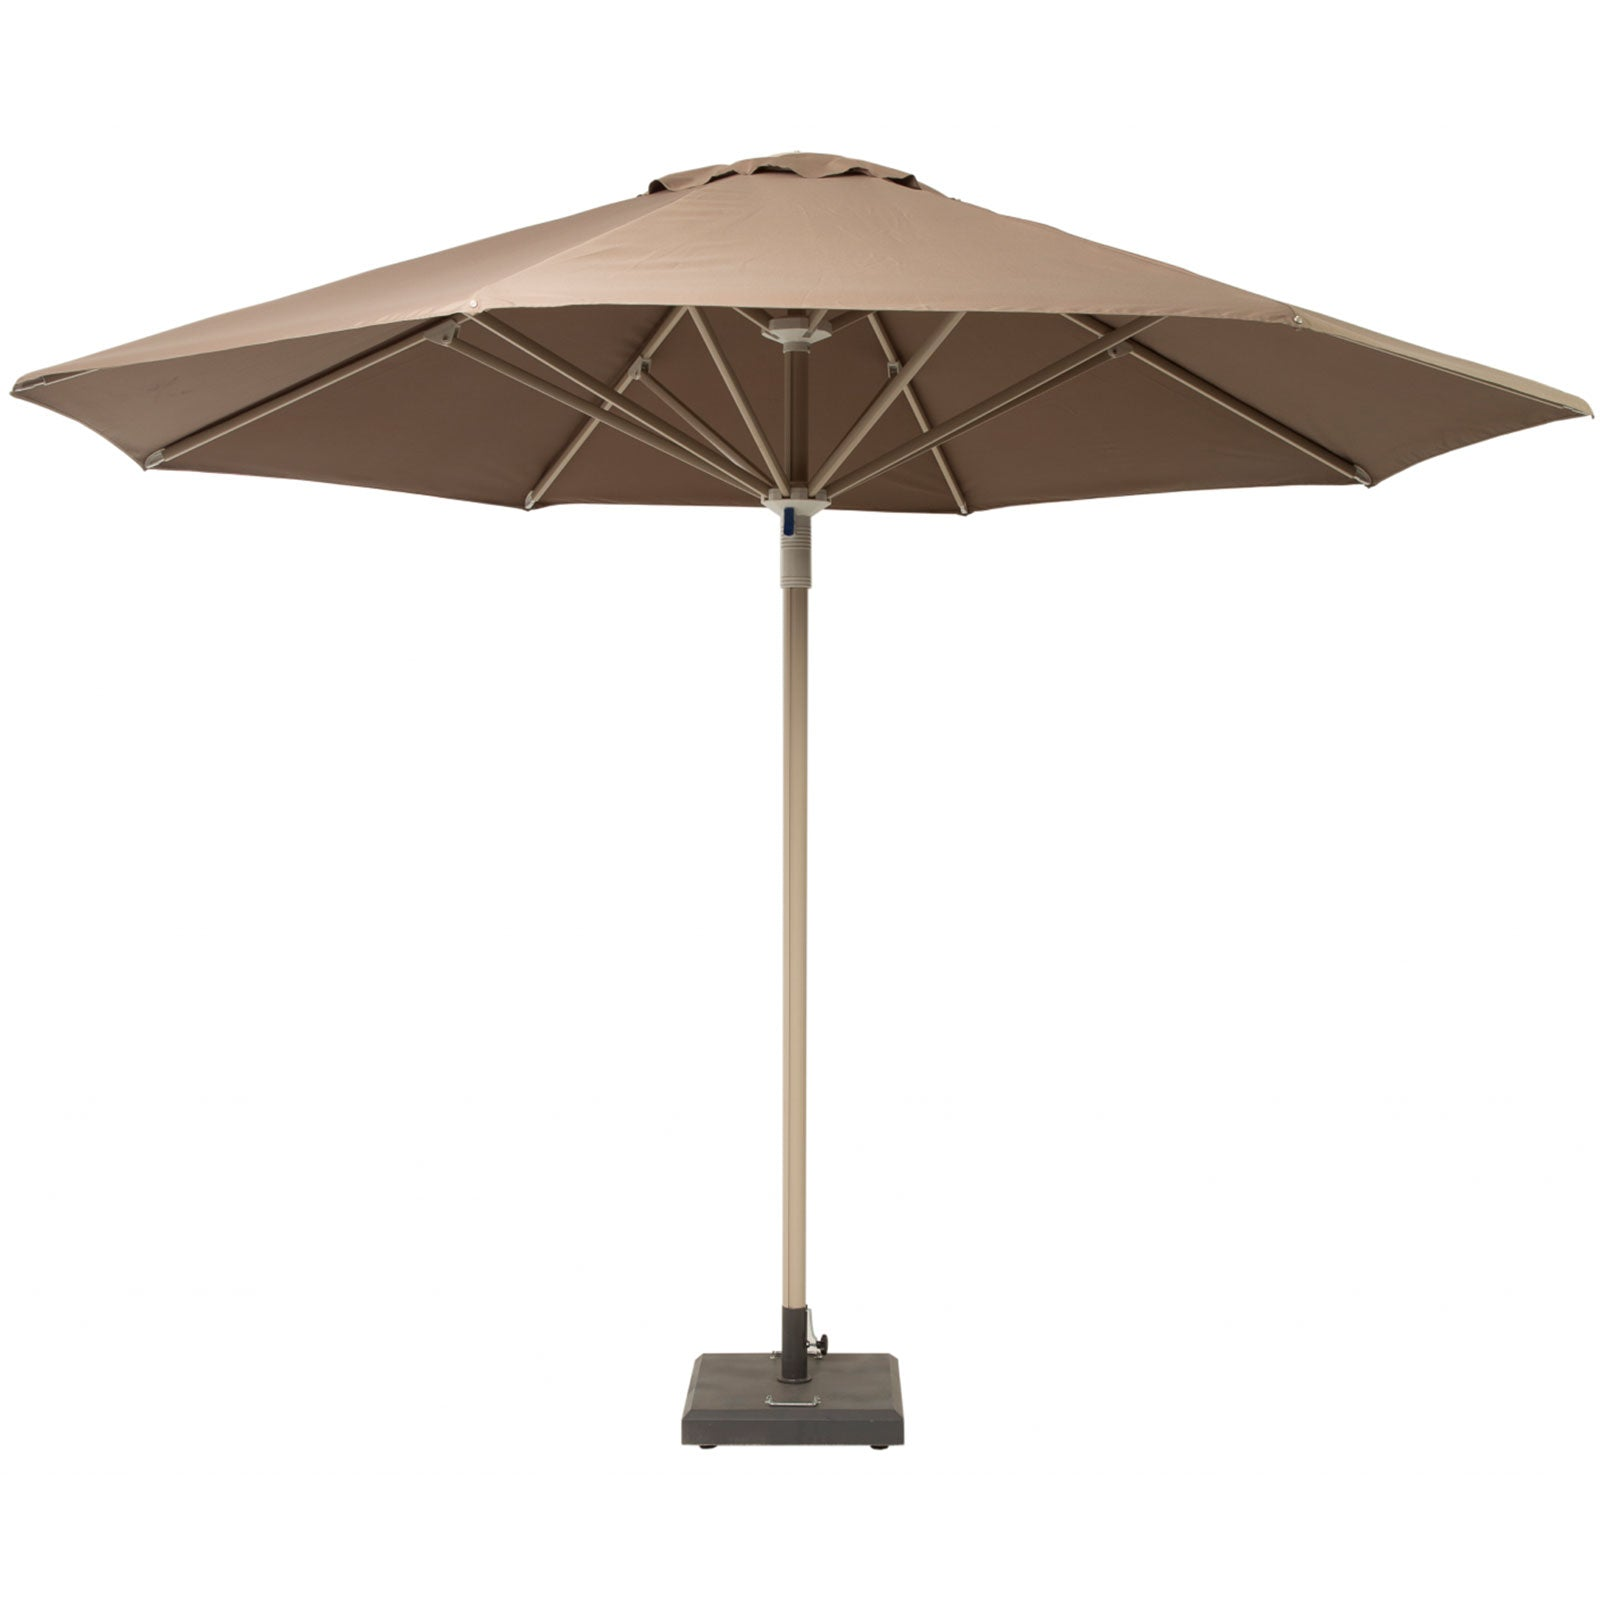 Telescopic Parasol With Base